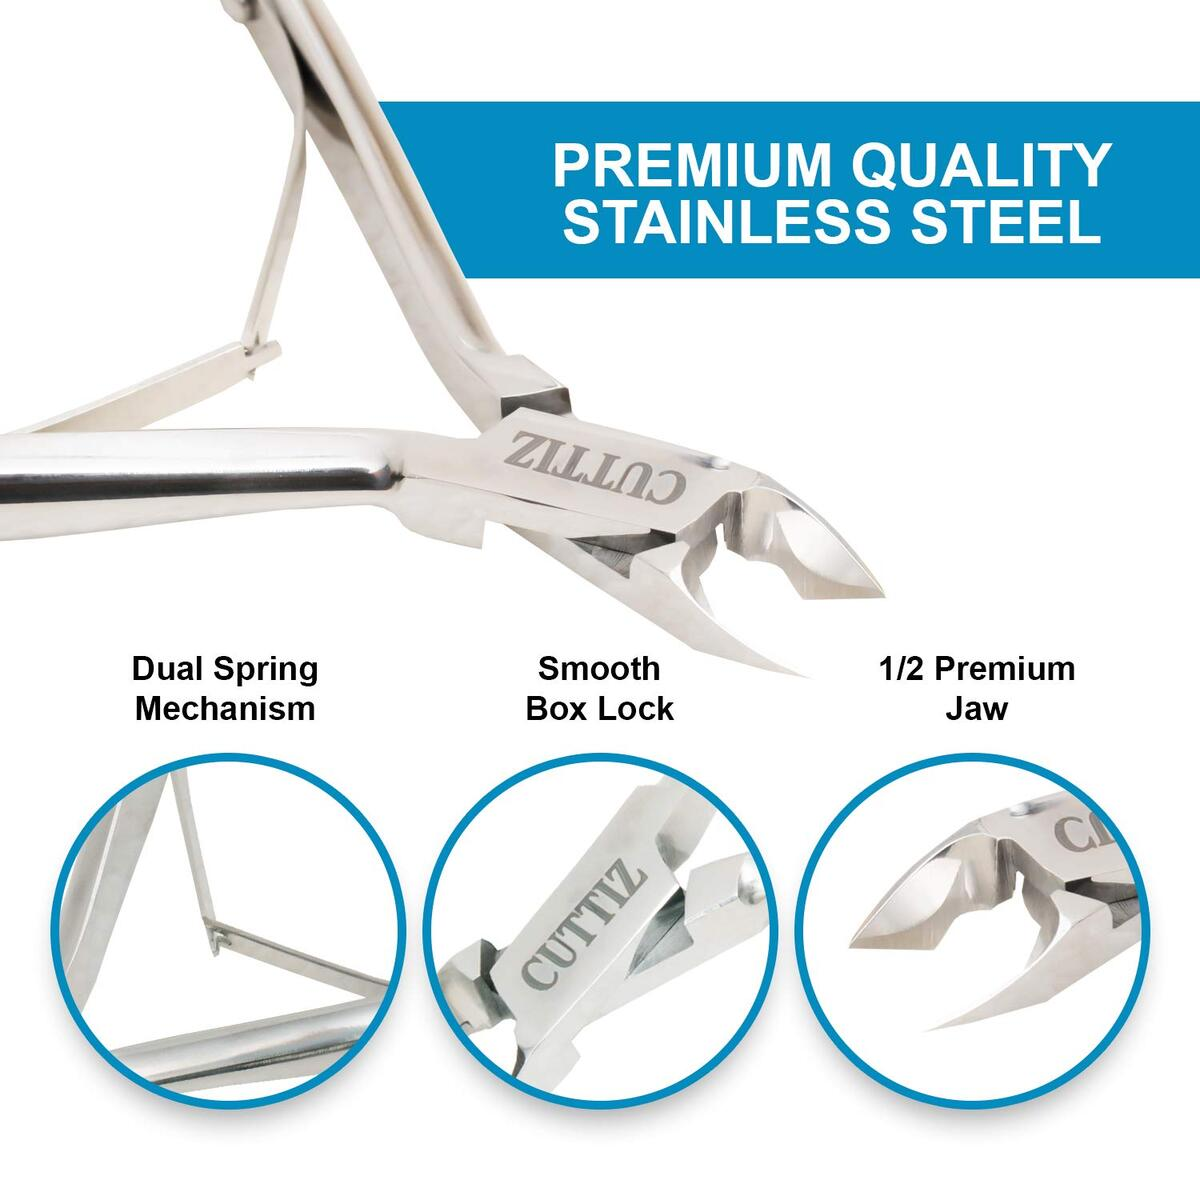 Cuticle Trimmer made of Stainless Steel, Nail Cuticle Clippers size 4.0 Inches with Double Spring, Loved by the Professional & Home users. Great addition in Manicure Tools by Cuttiz